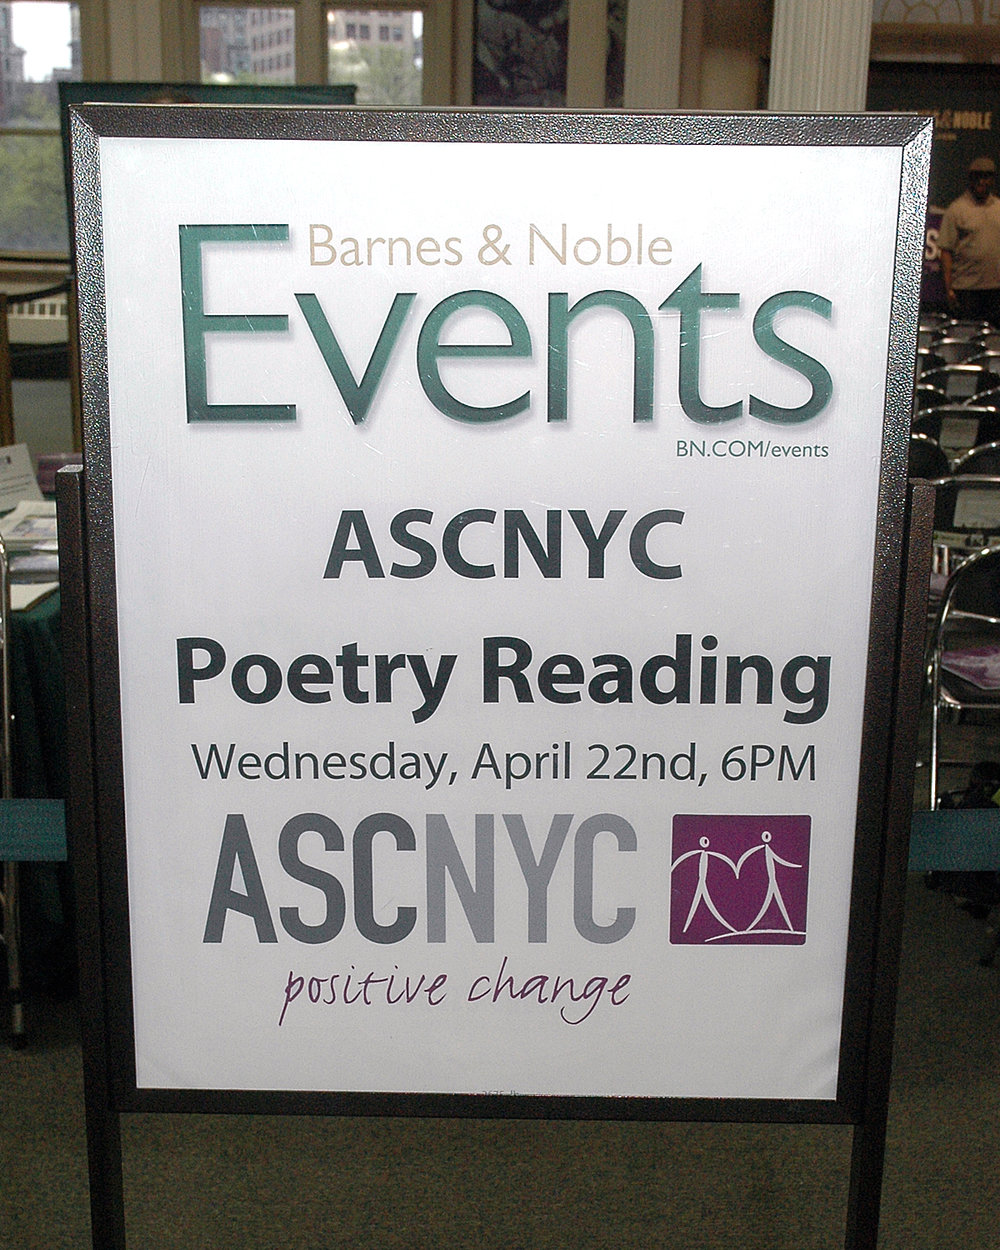 ASCNYC Poetry Reading at Barnes and Noble